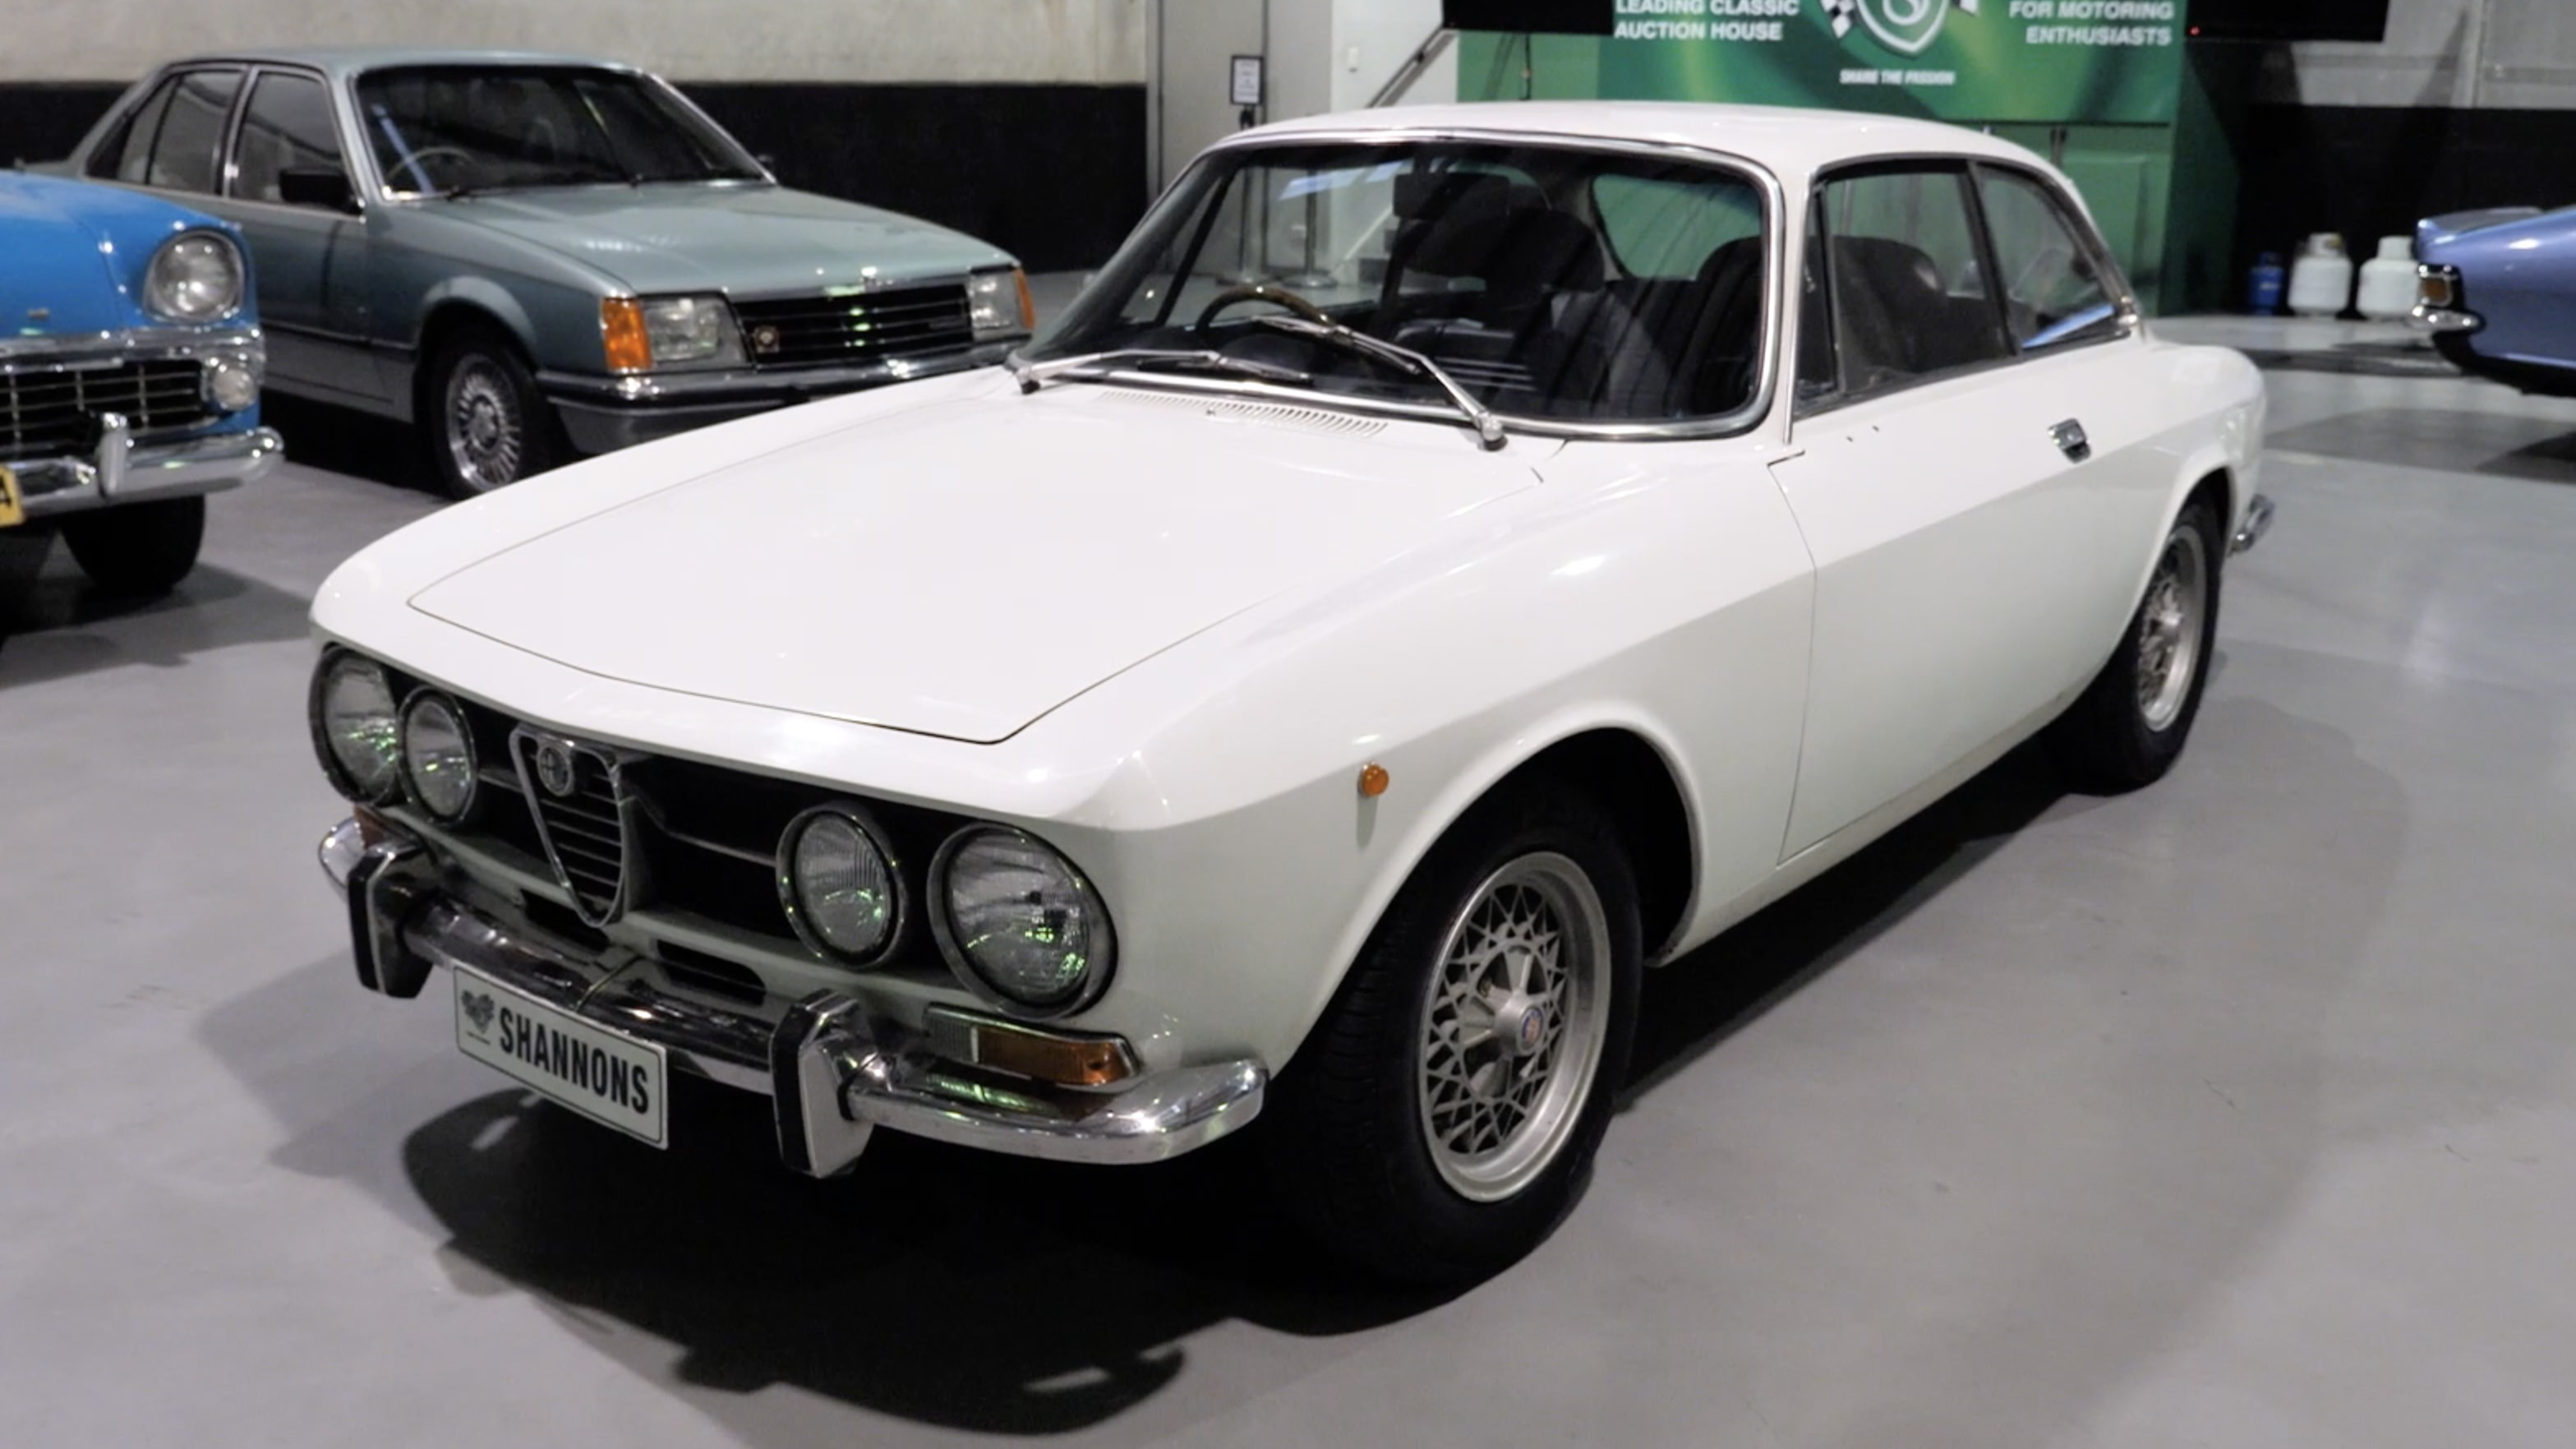 1970 Alfa Romeo 1750 GTV Coupe - 2020 Shannons Spring Timed Online Auction